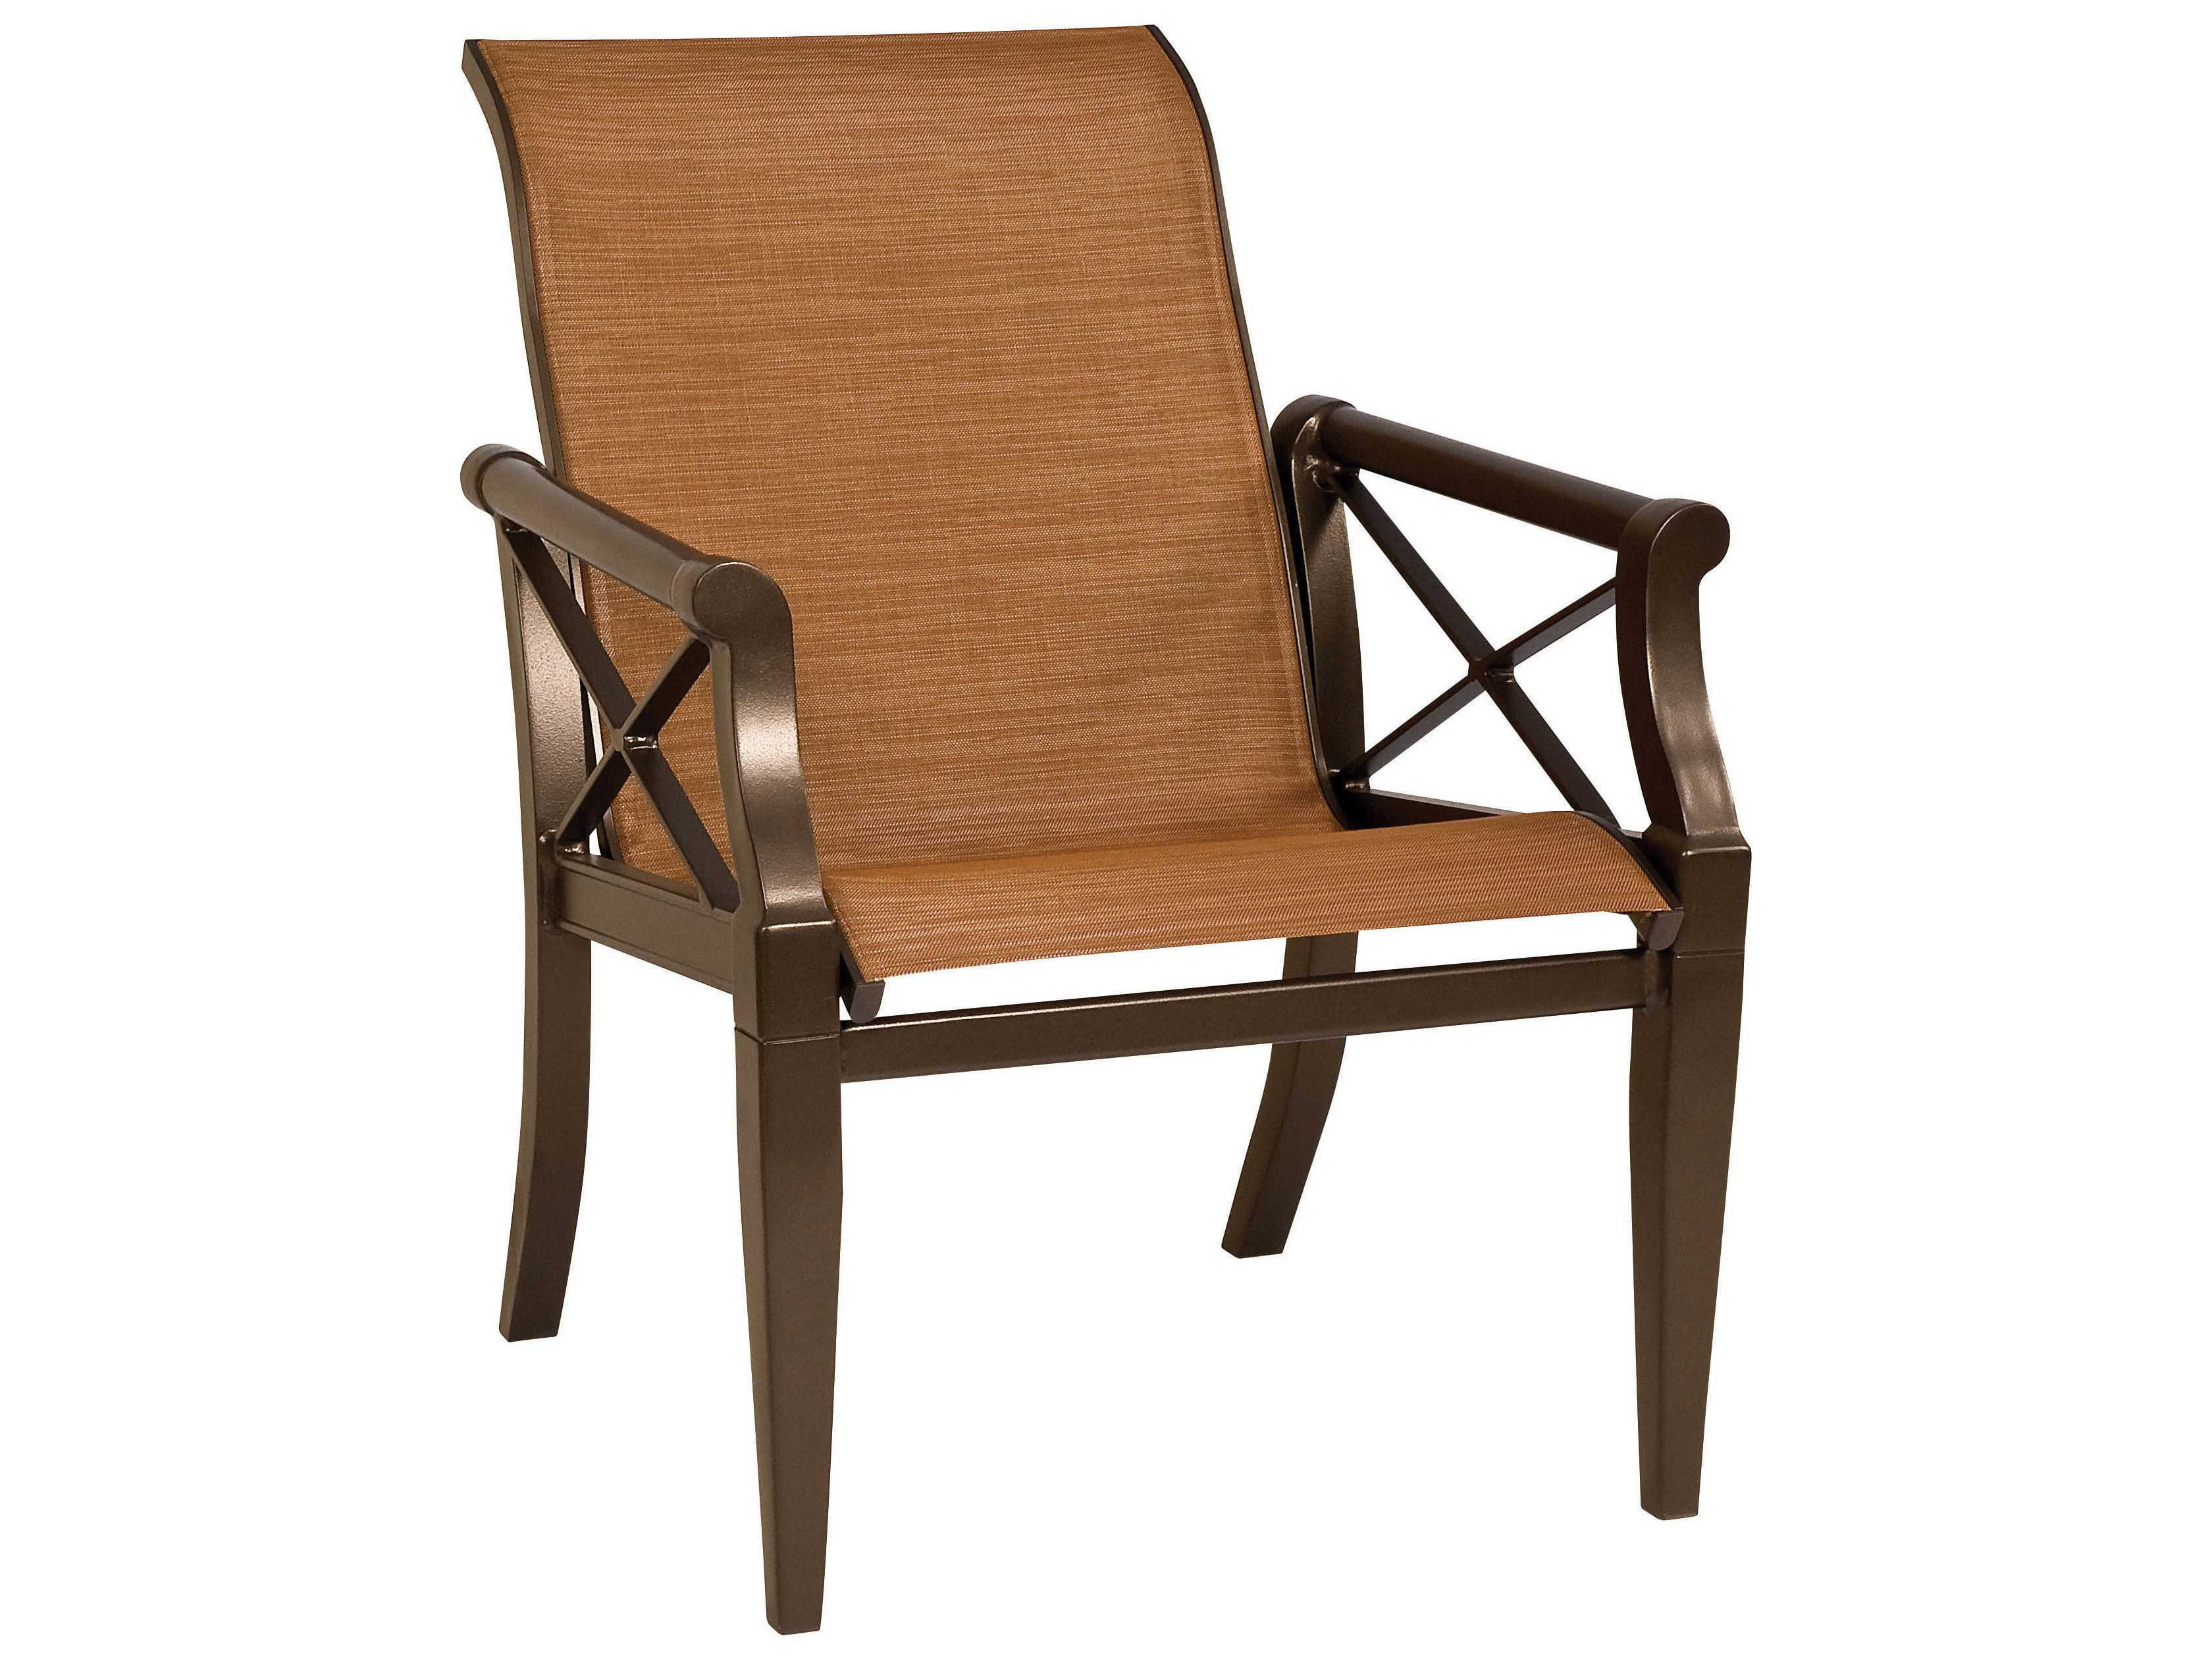 Woodard Andover Sling Aluminum Low Back Dining Arm Chair  : WR3Q0401zm from www.luxedecor.com size 3360 x 2520 jpeg 413kB